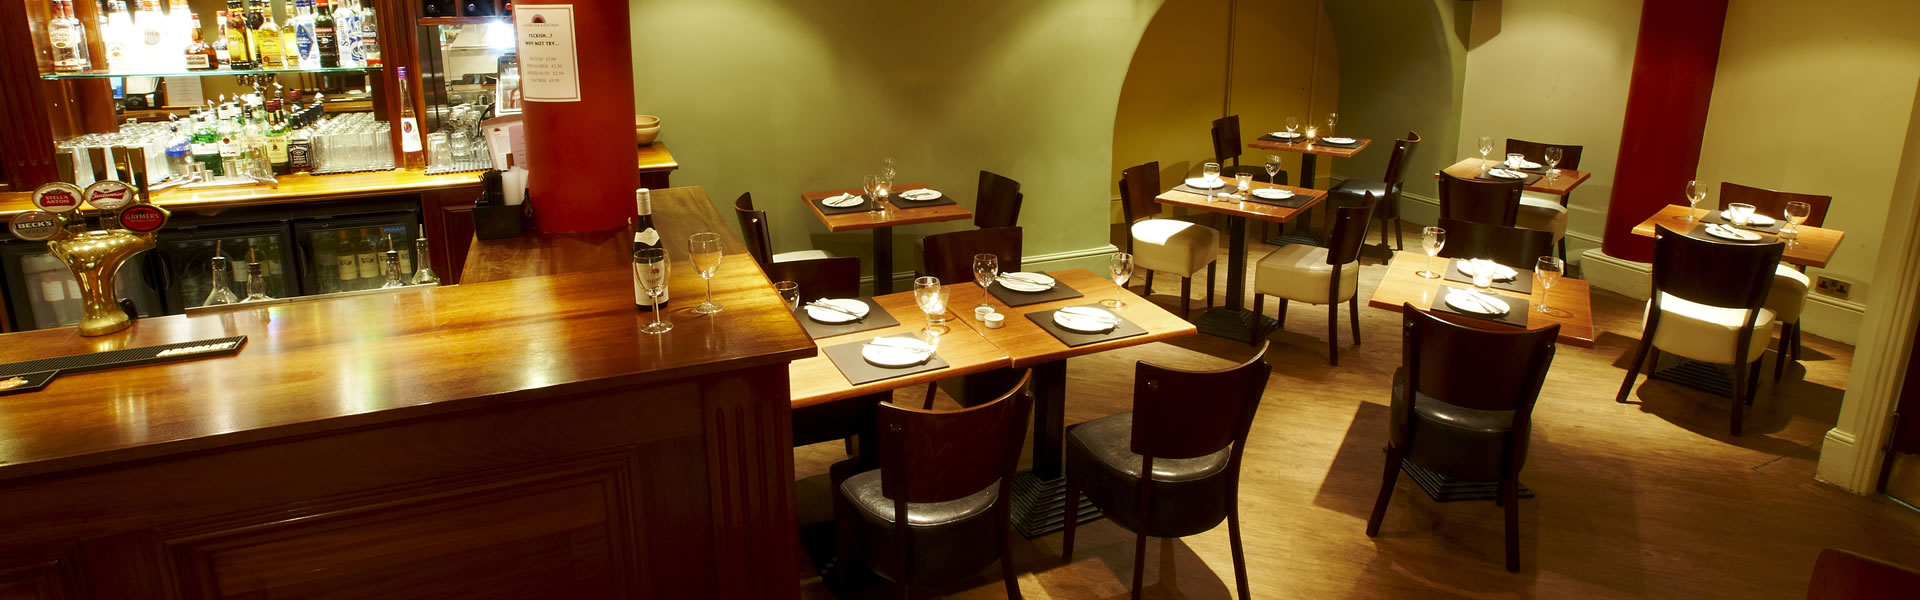 Charing Cross Theatre Players Bar And Kitchen London